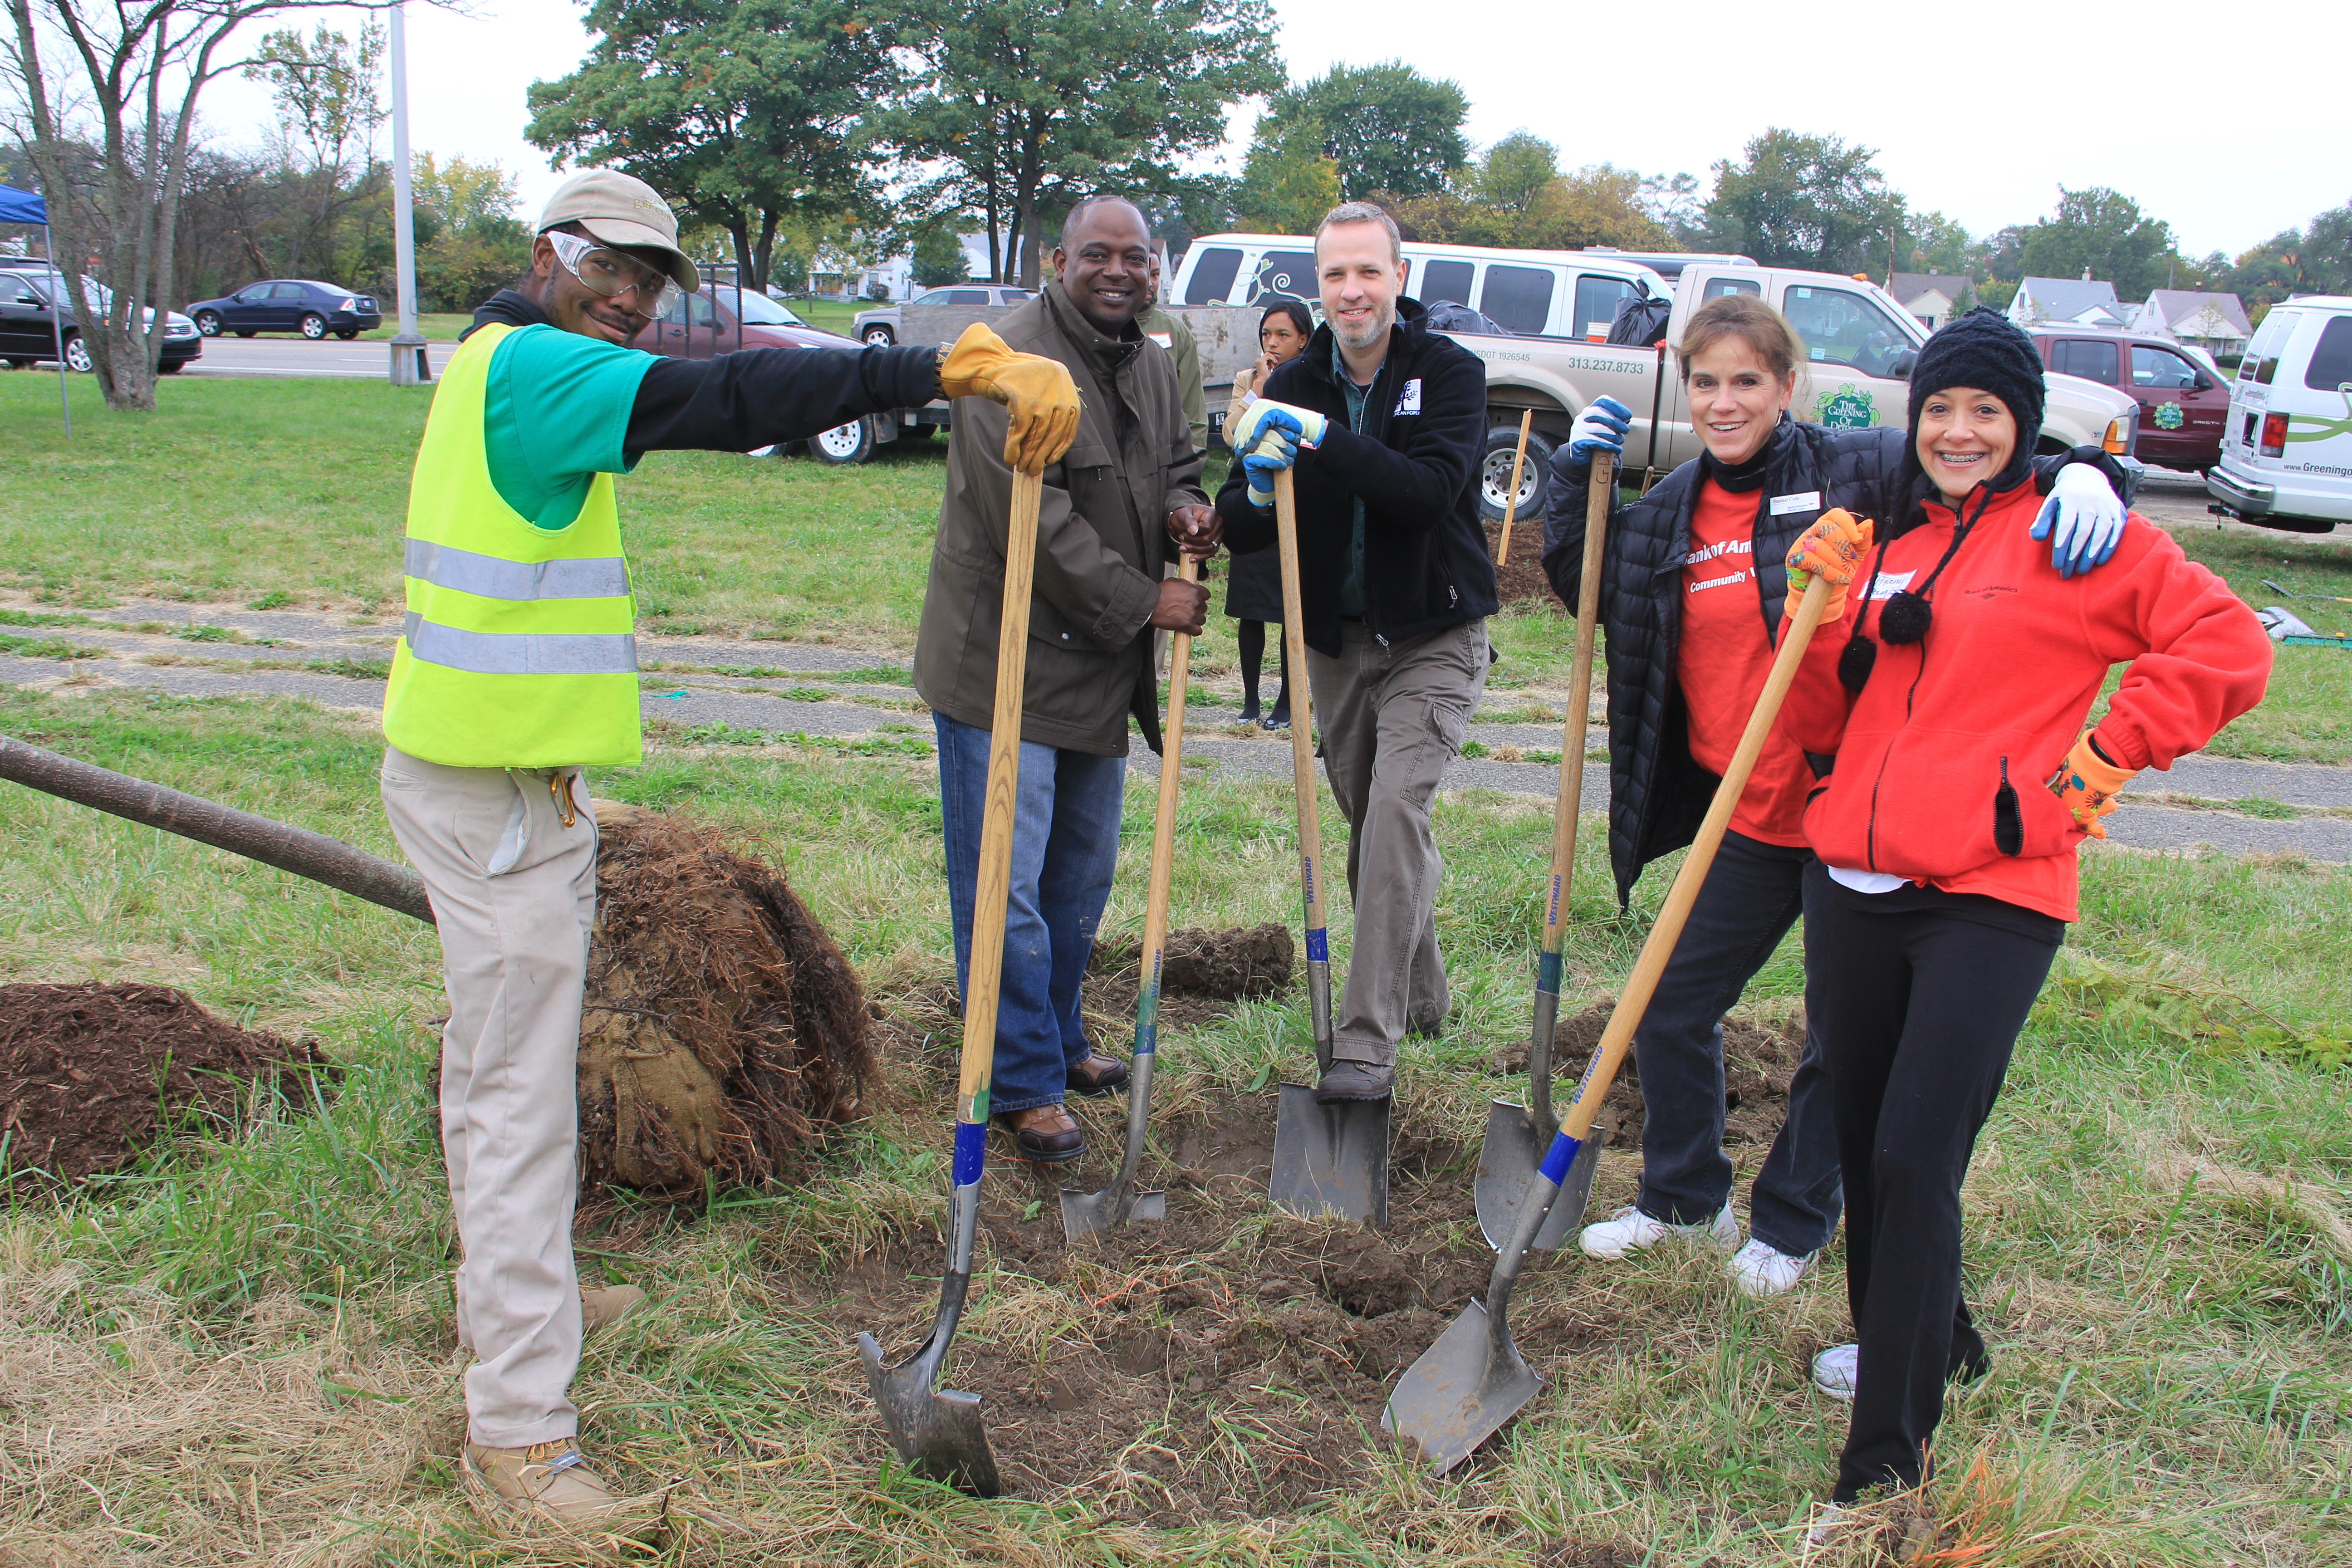 American Forests staff with shovels